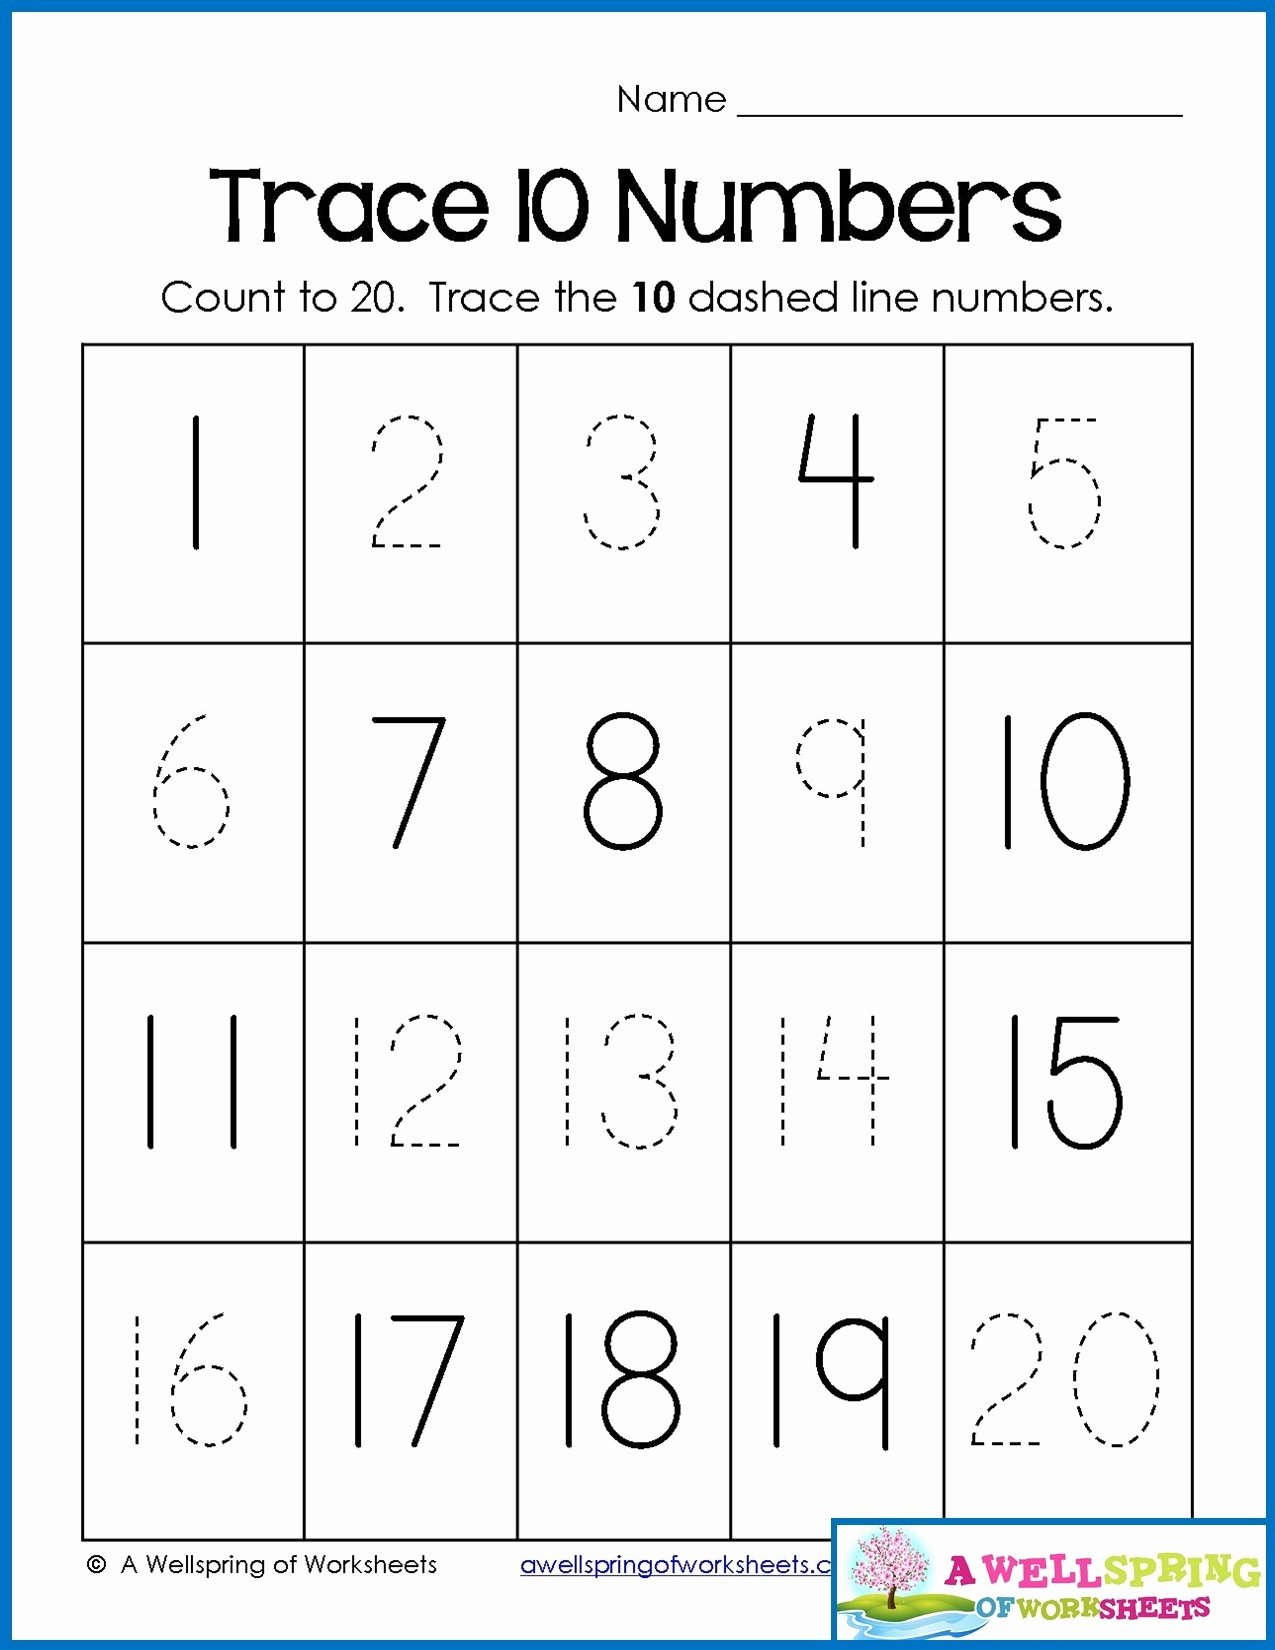 Counting Worksheets for Preschoolers Fresh Math Worksheet Number Worksheets for Preschool Christmas